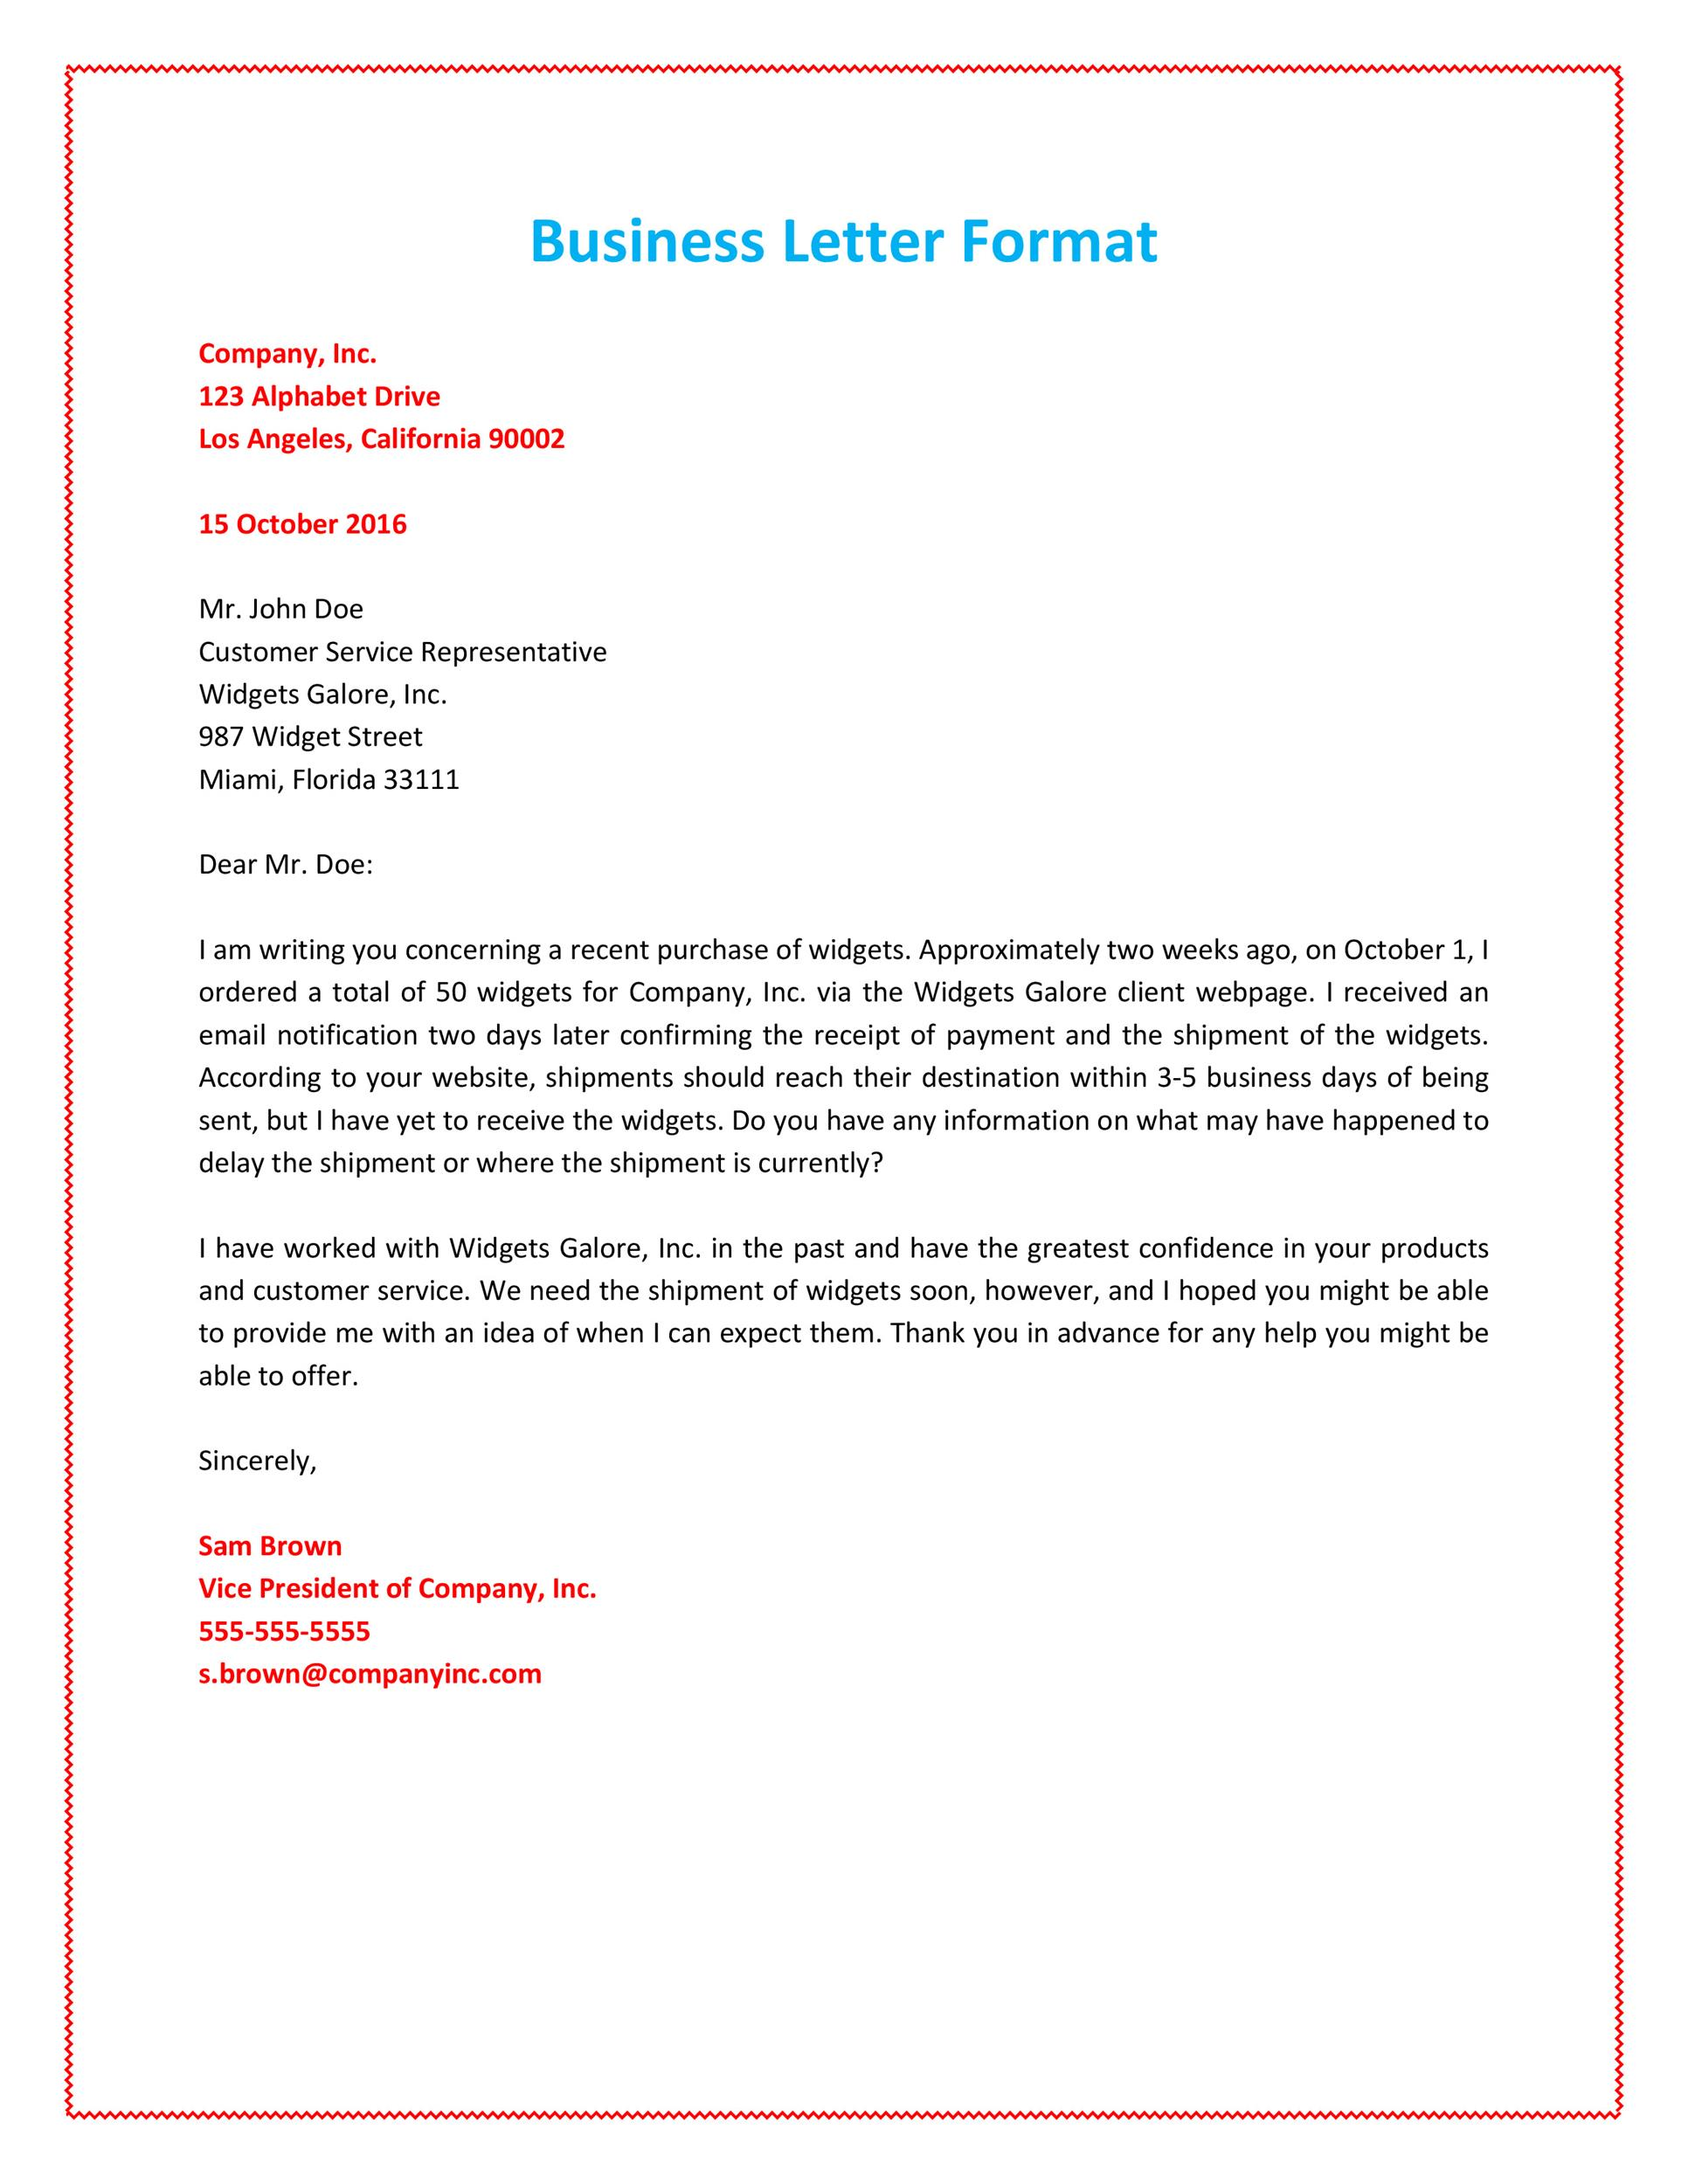 Superb Business Letter Format Example